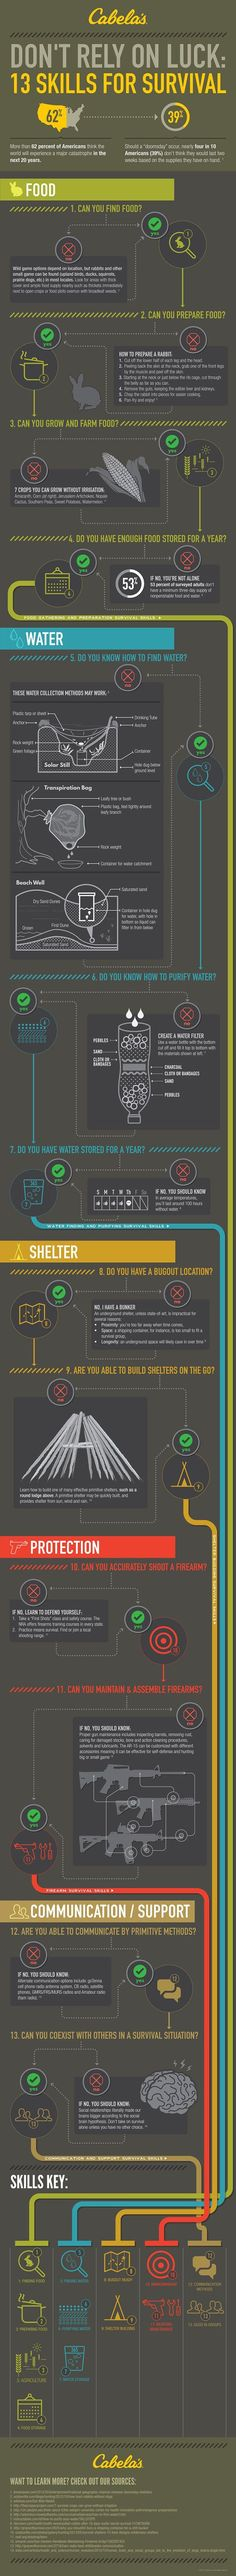 top survival skills infographic